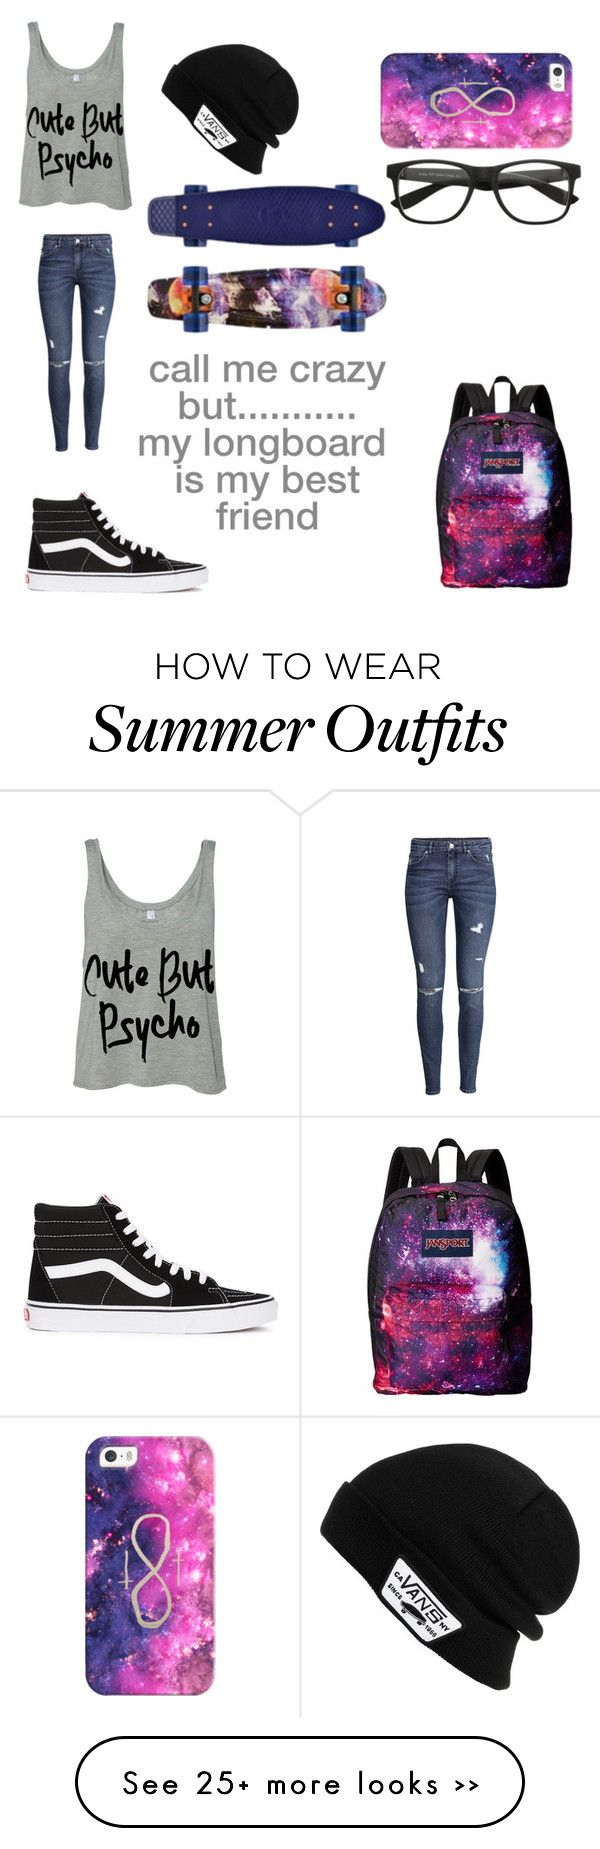 """CUTE BUT PSYCHO"" by candygirl156 on Polyvore featuring H&M, Casetify, Vans and JanSport"